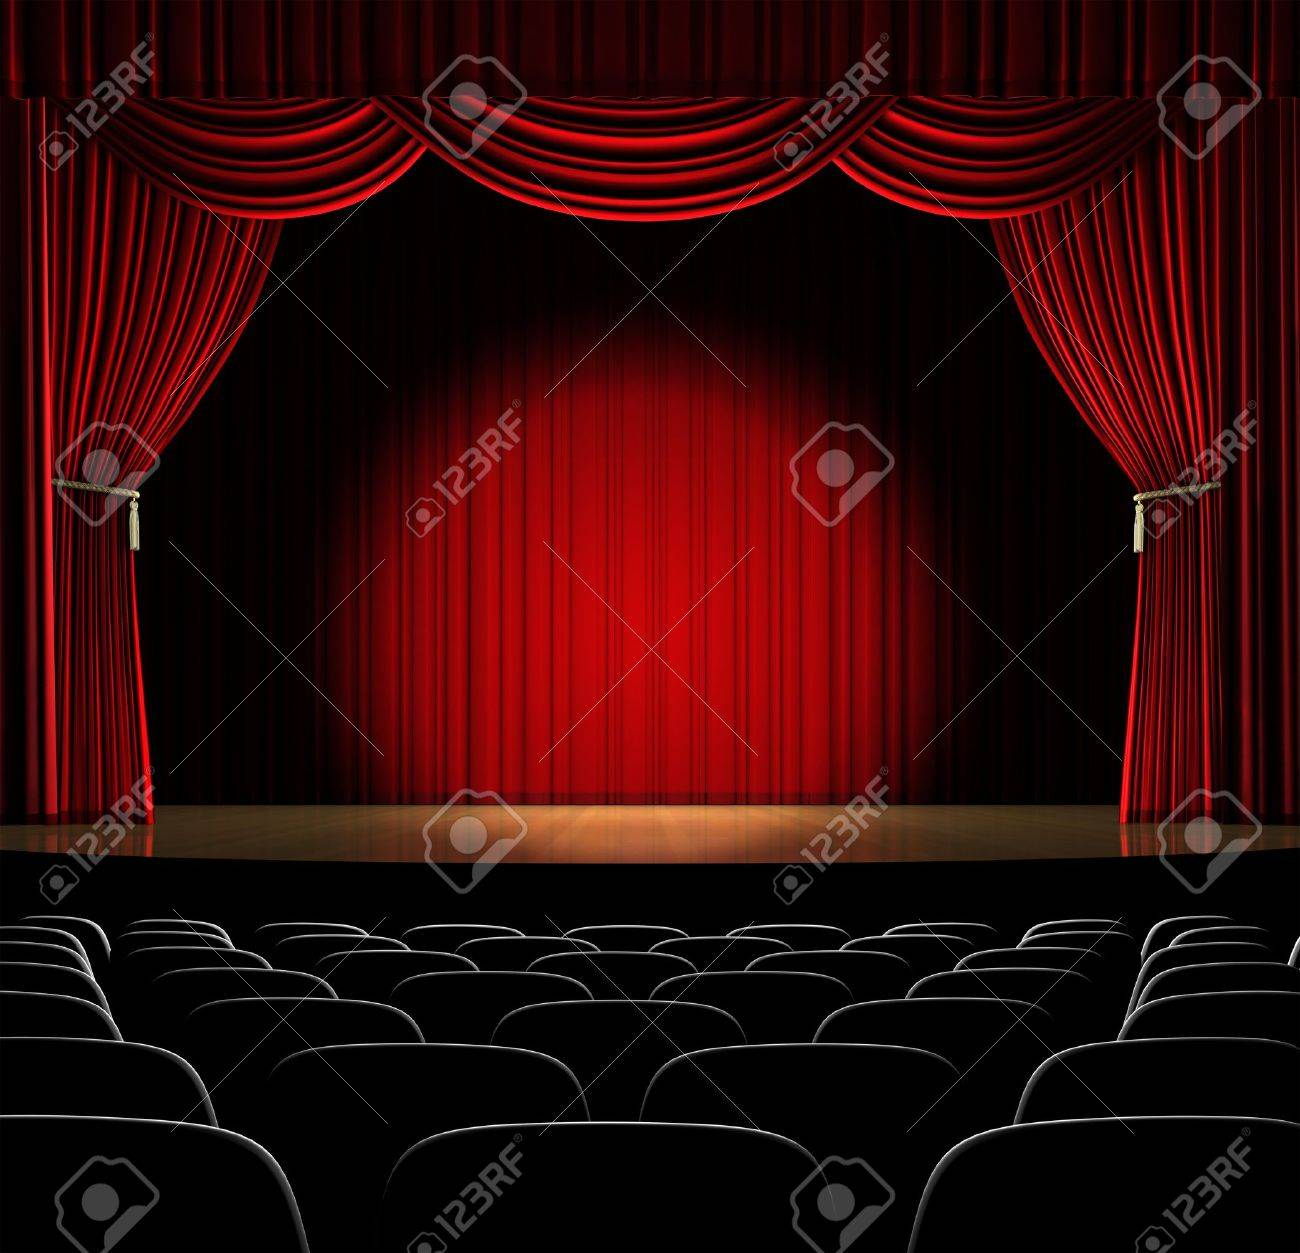 Red curtain spotlight - Theatre Stage With Red Curtain And Spotlight On The Stage Stock Photo 7057780